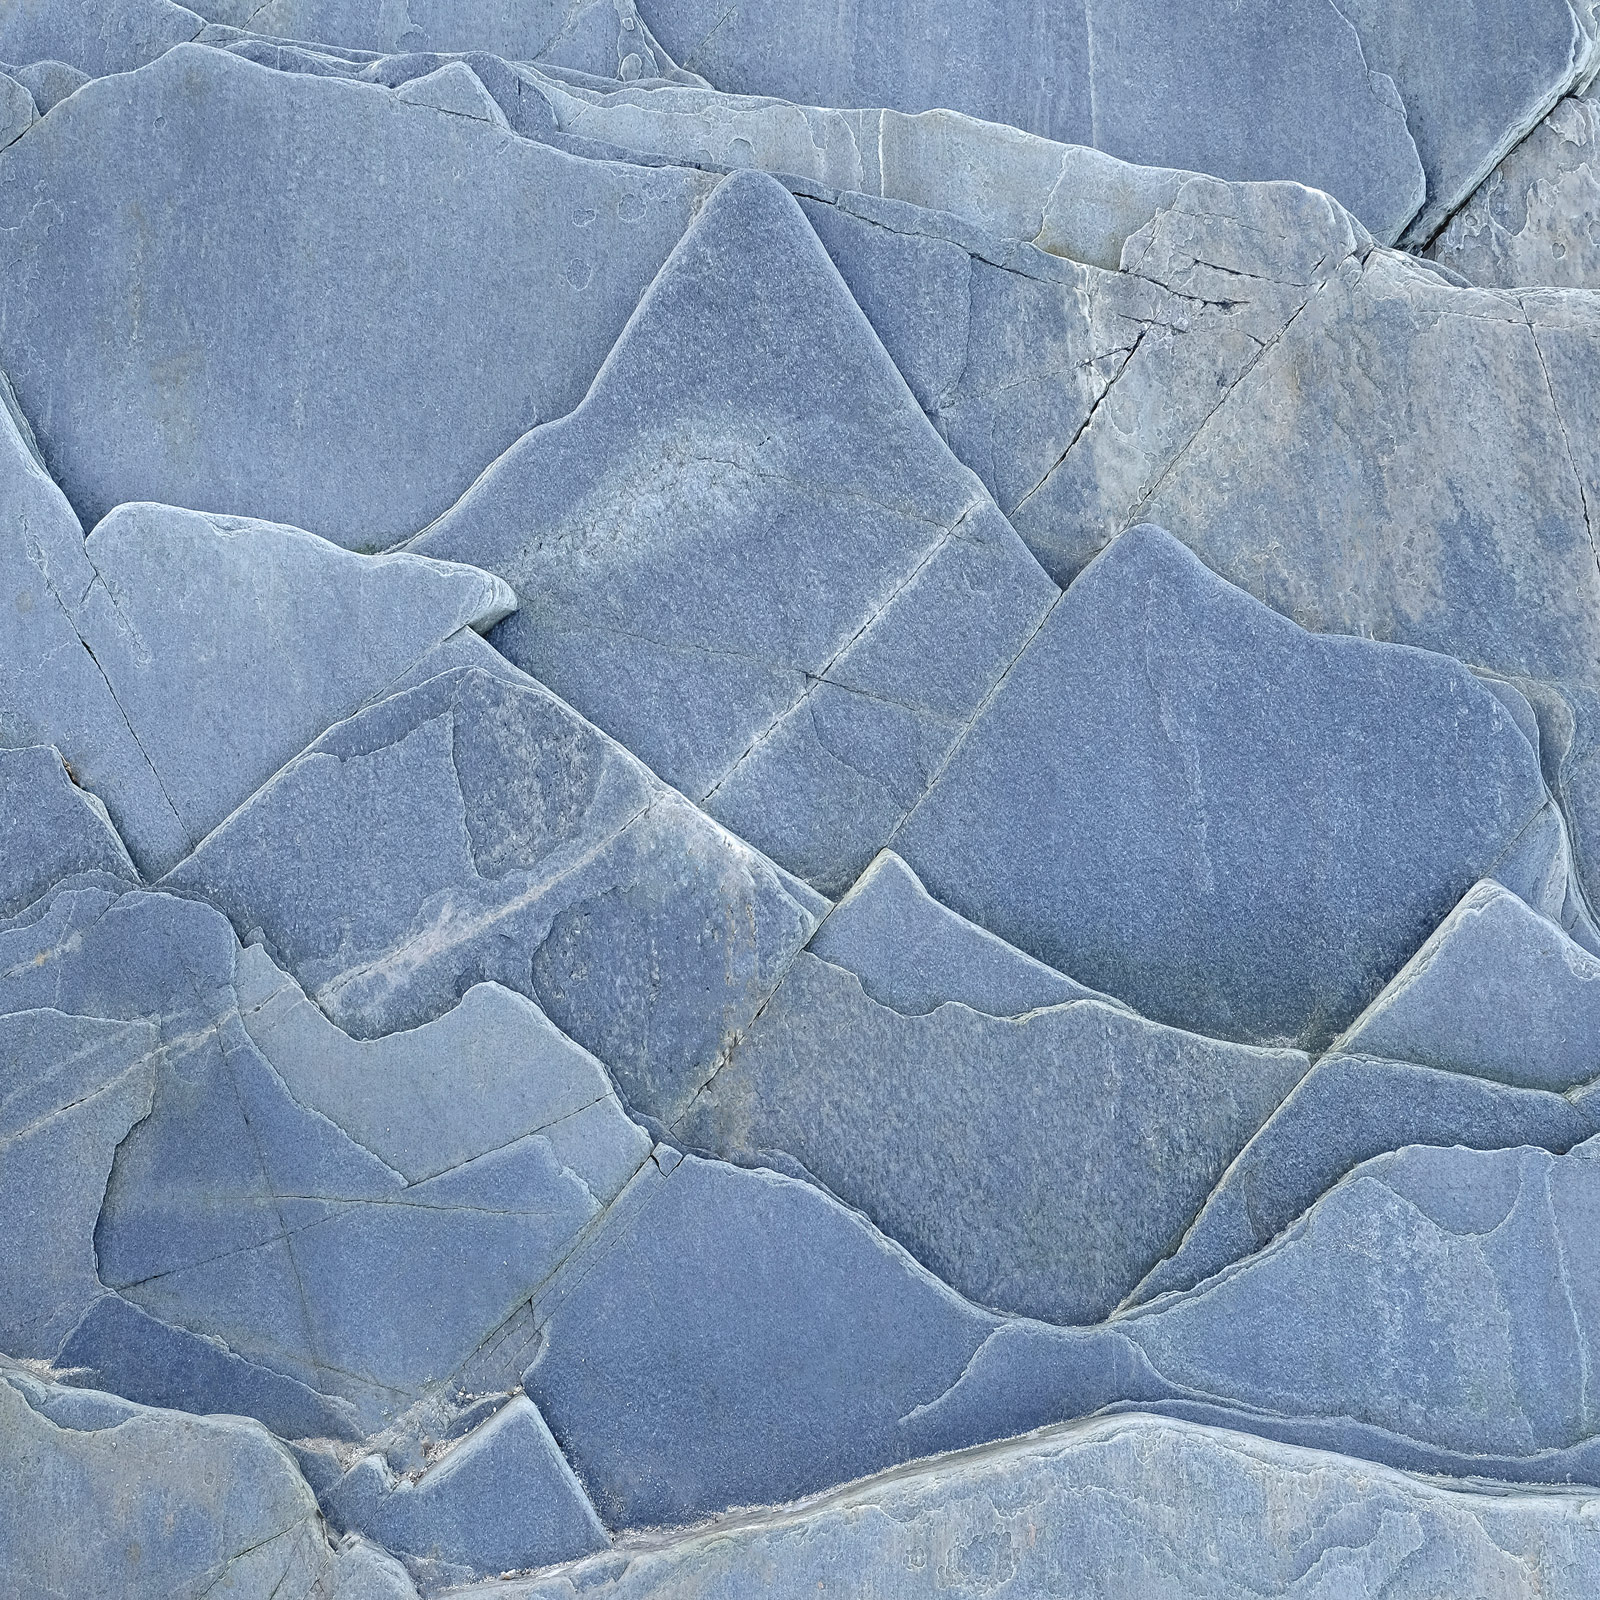 This amazing pattern in a flat slab of fractured rock looked all the world to me like the overlapping layers of mountains that...